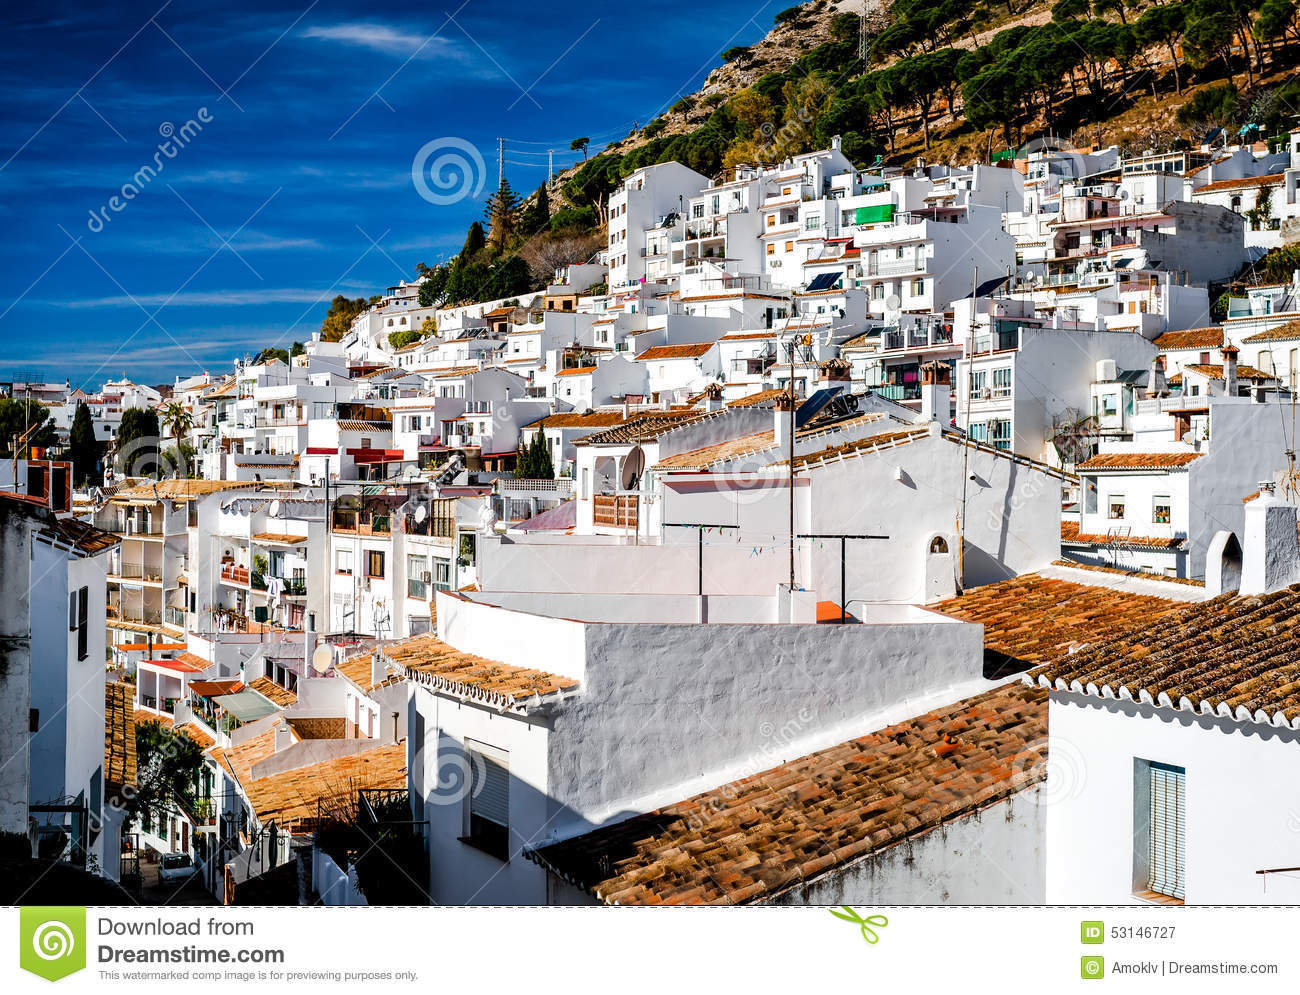 Day view of Mijas